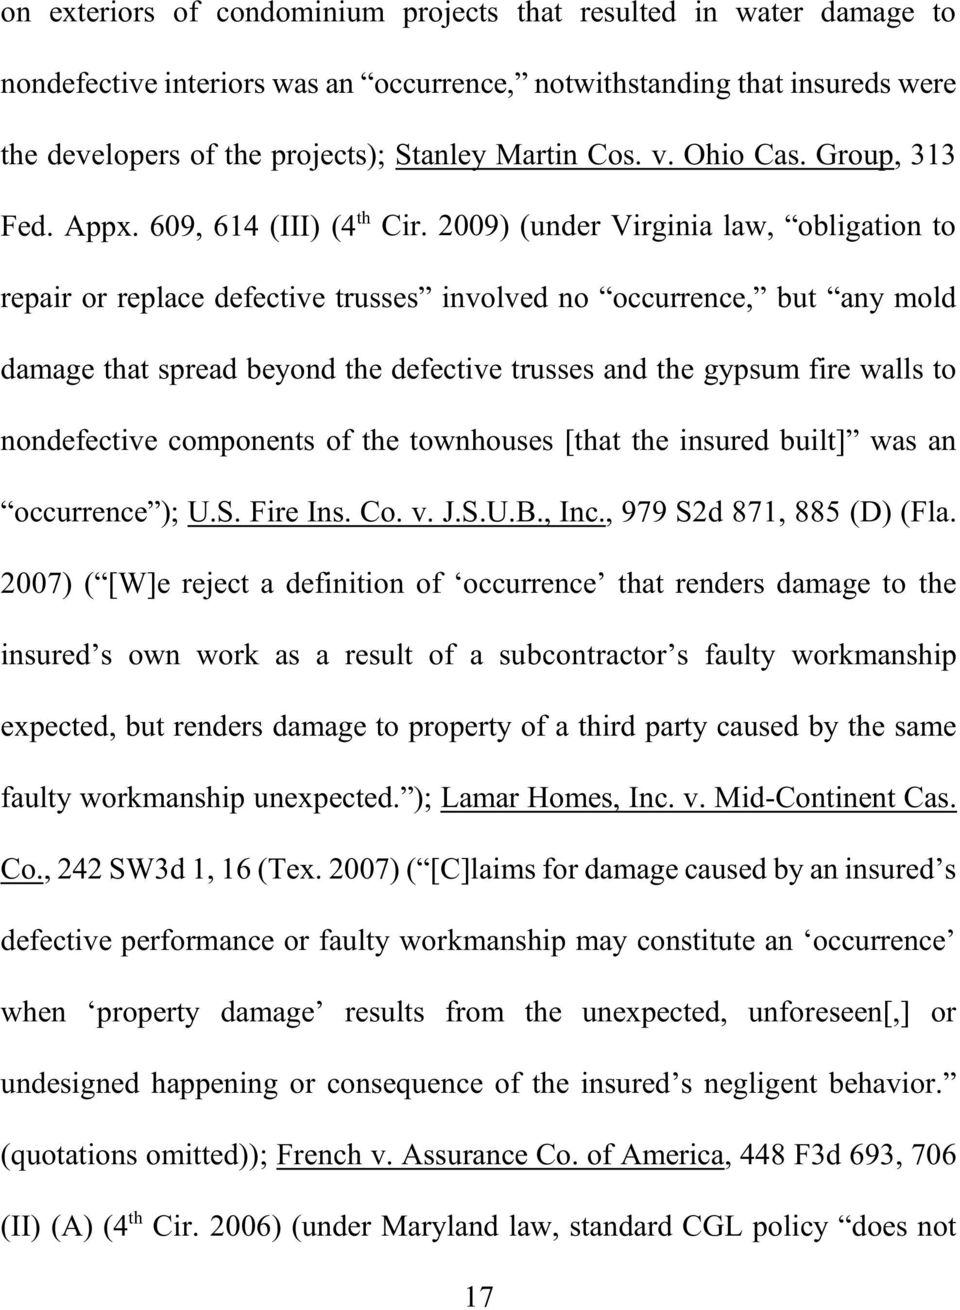 2009) (under Virginia law, obligation to repair or replace defective trusses involved no occurrence, but any mold damage that spread beyond the defective trusses and the gypsum fire walls to